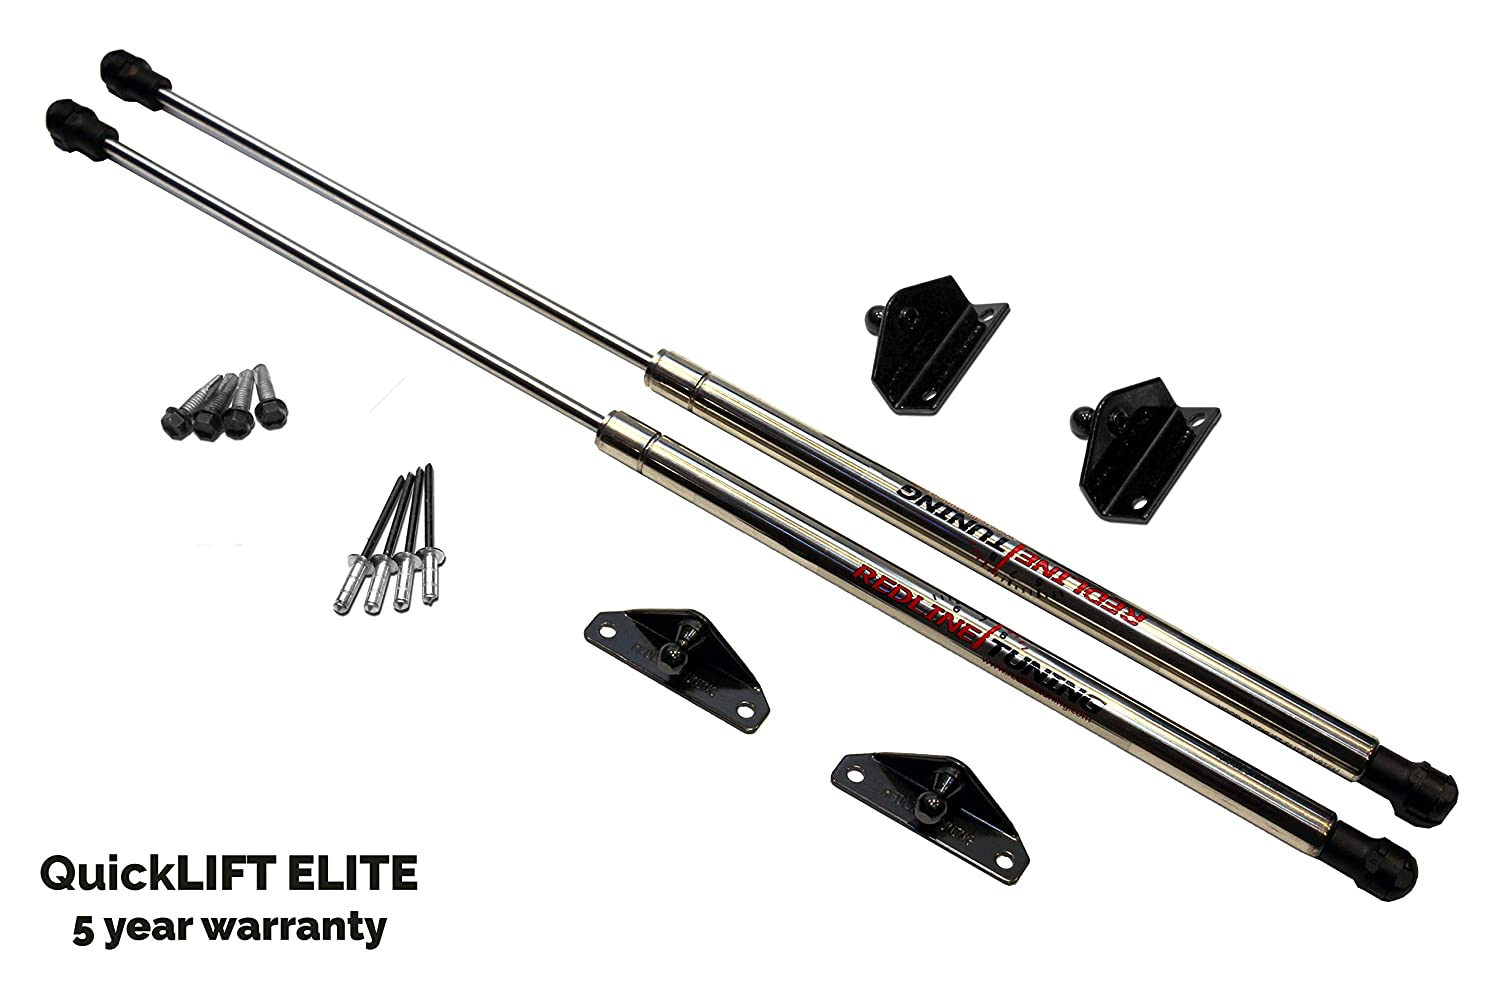 Redline Tuning 21-27010-03 Toyota Tacoma Hood QuickLIFT ELITE System - Struts Stainless Steel & Compatible With All Hoods